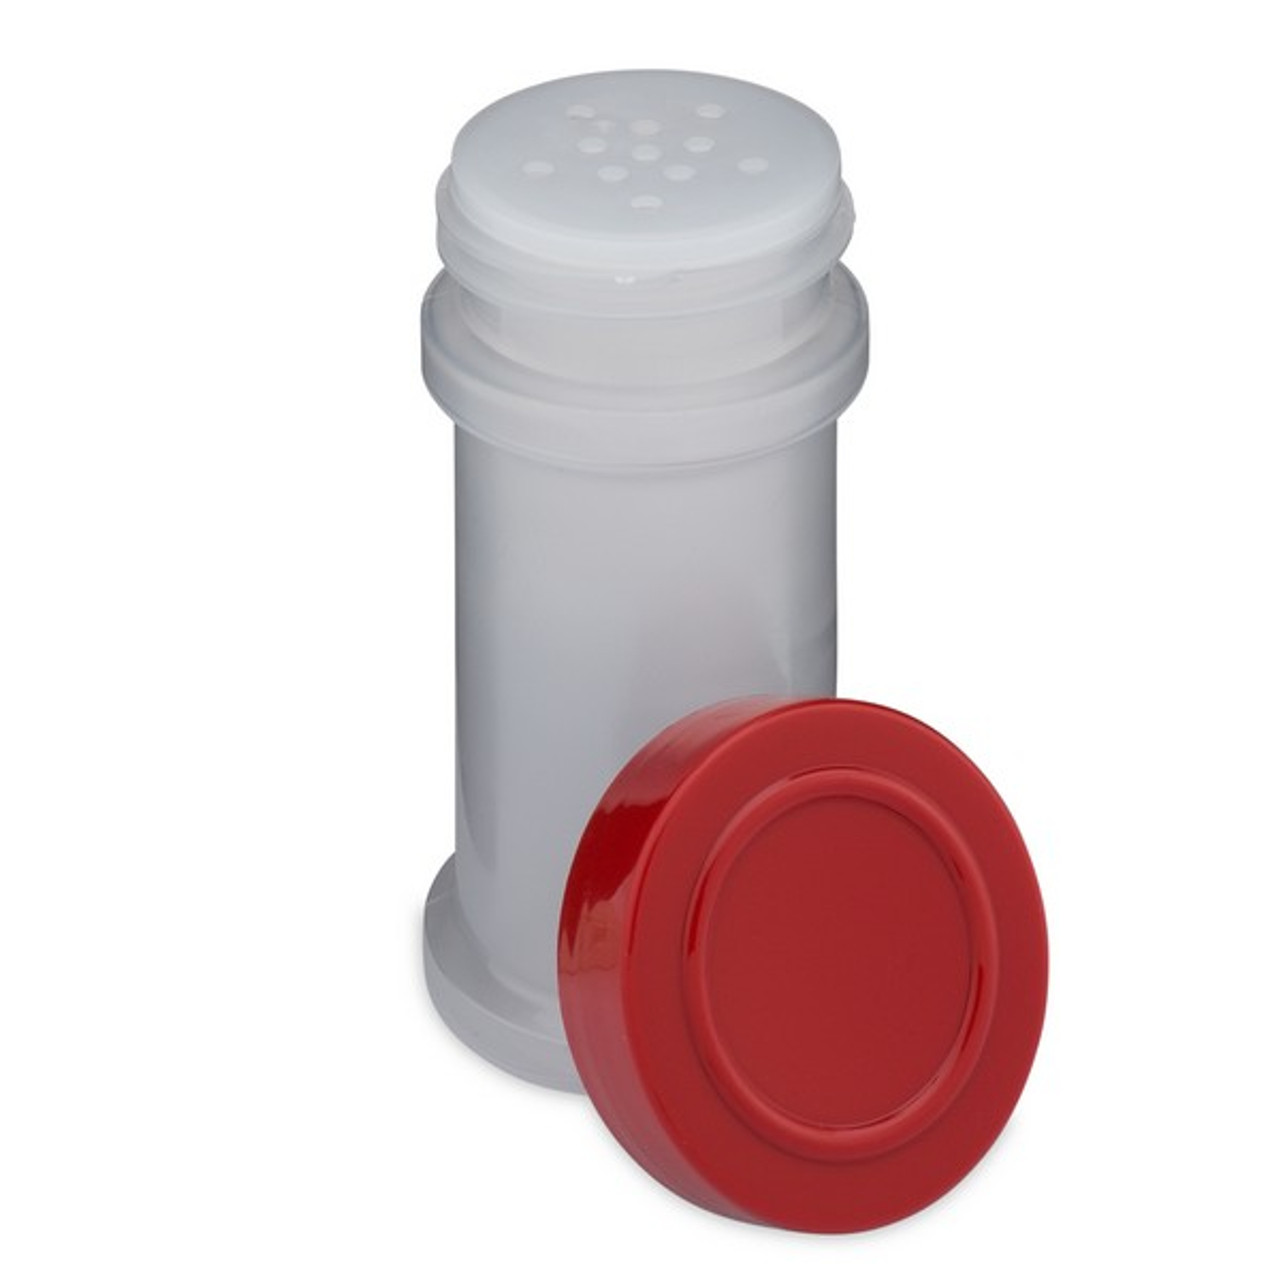 97021676a434 4 oz Natural PP Plastic Spice Jars (Red Cap) - 2302B06RED